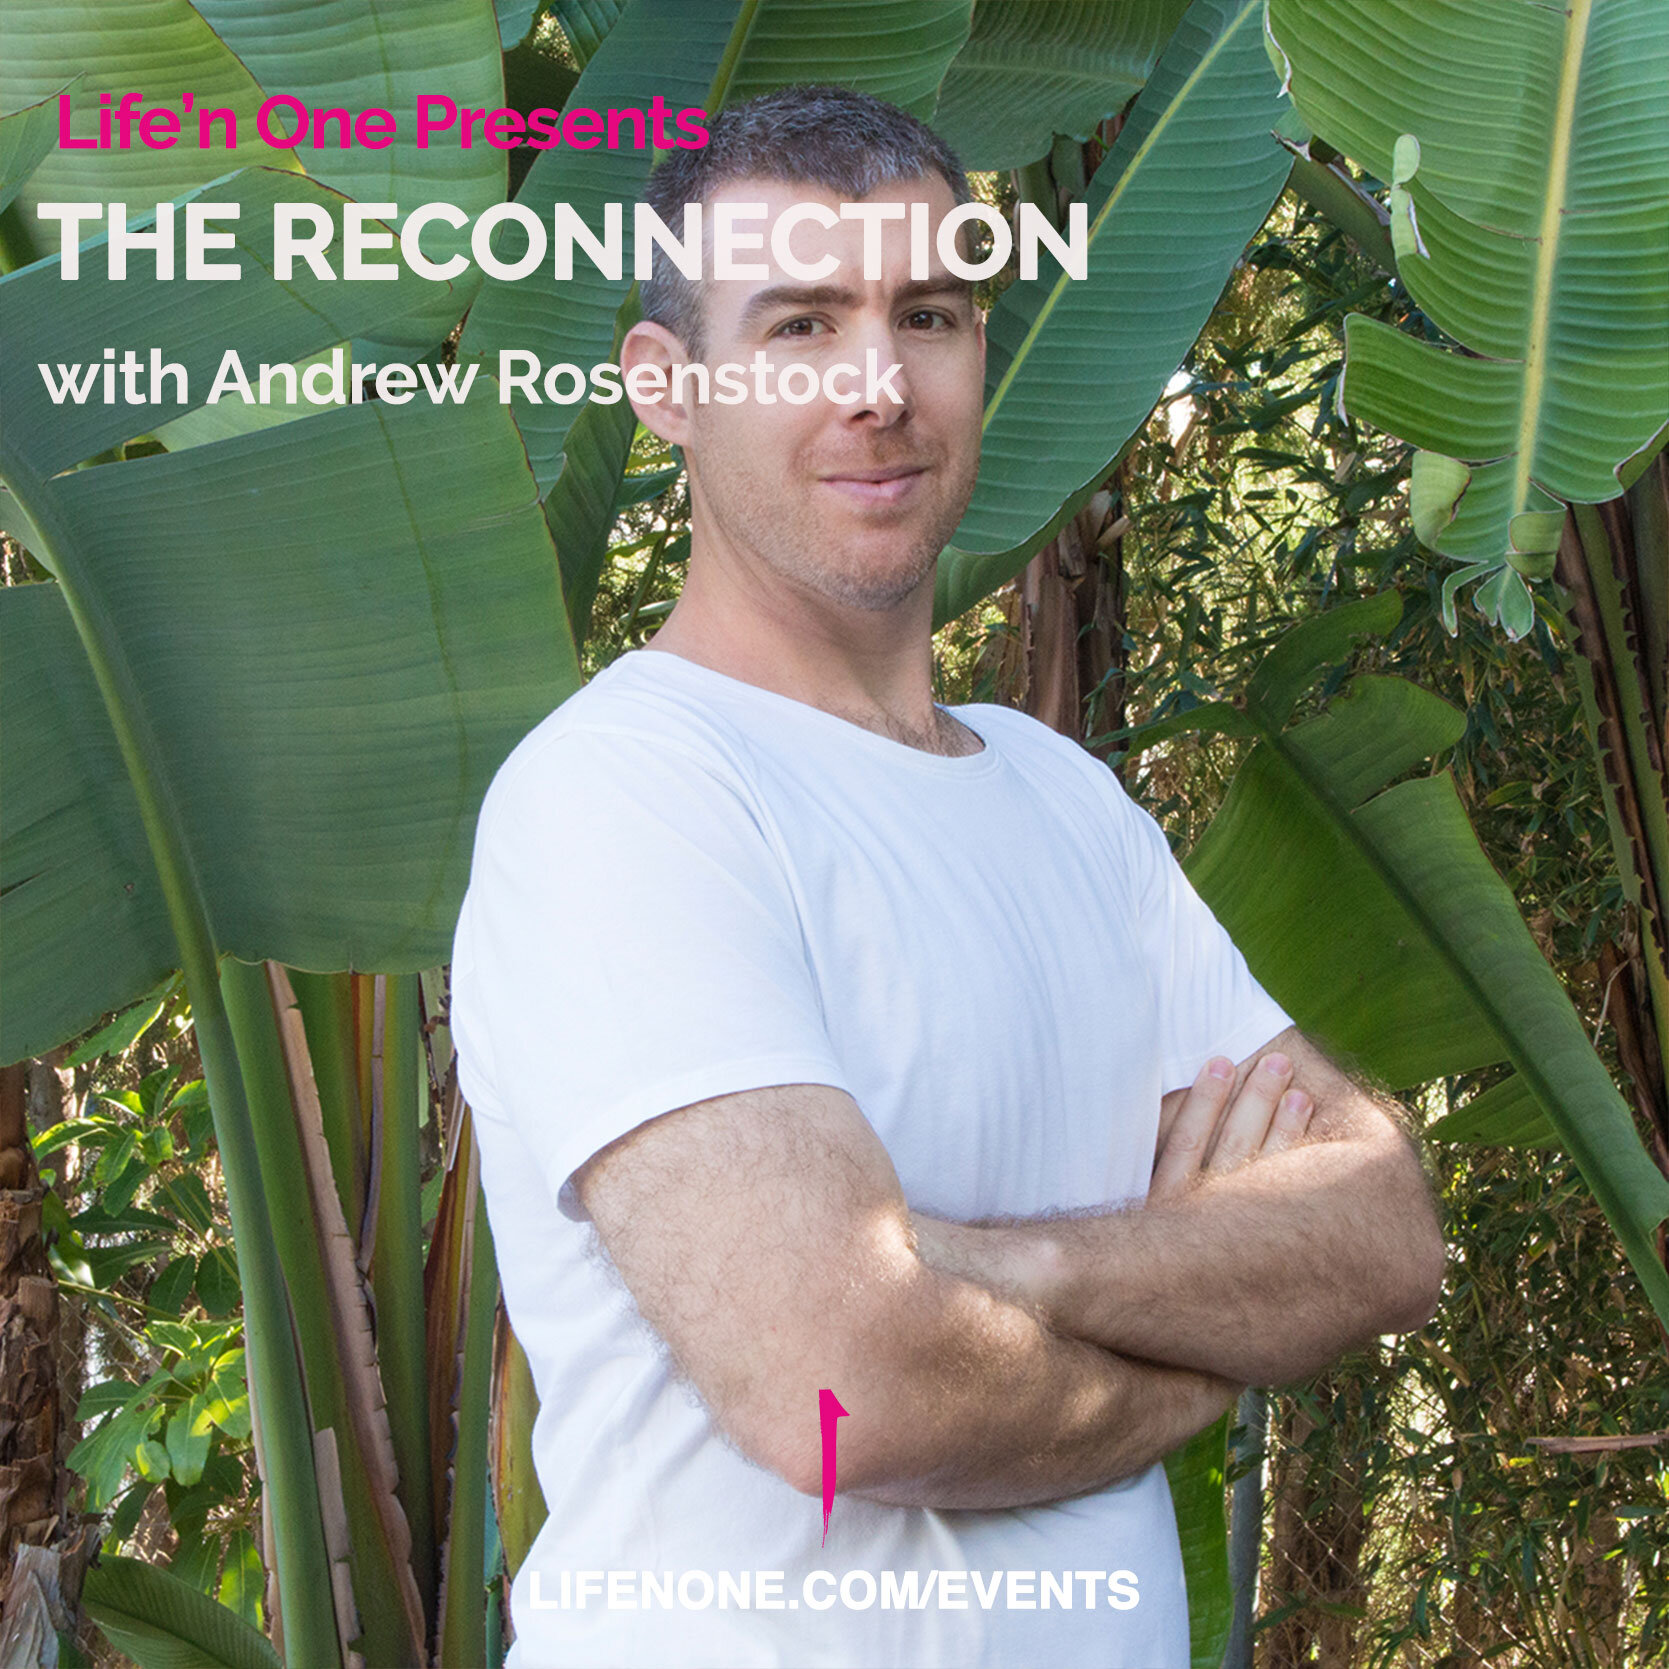 191203-the-reconnection-with-andrew.jpg